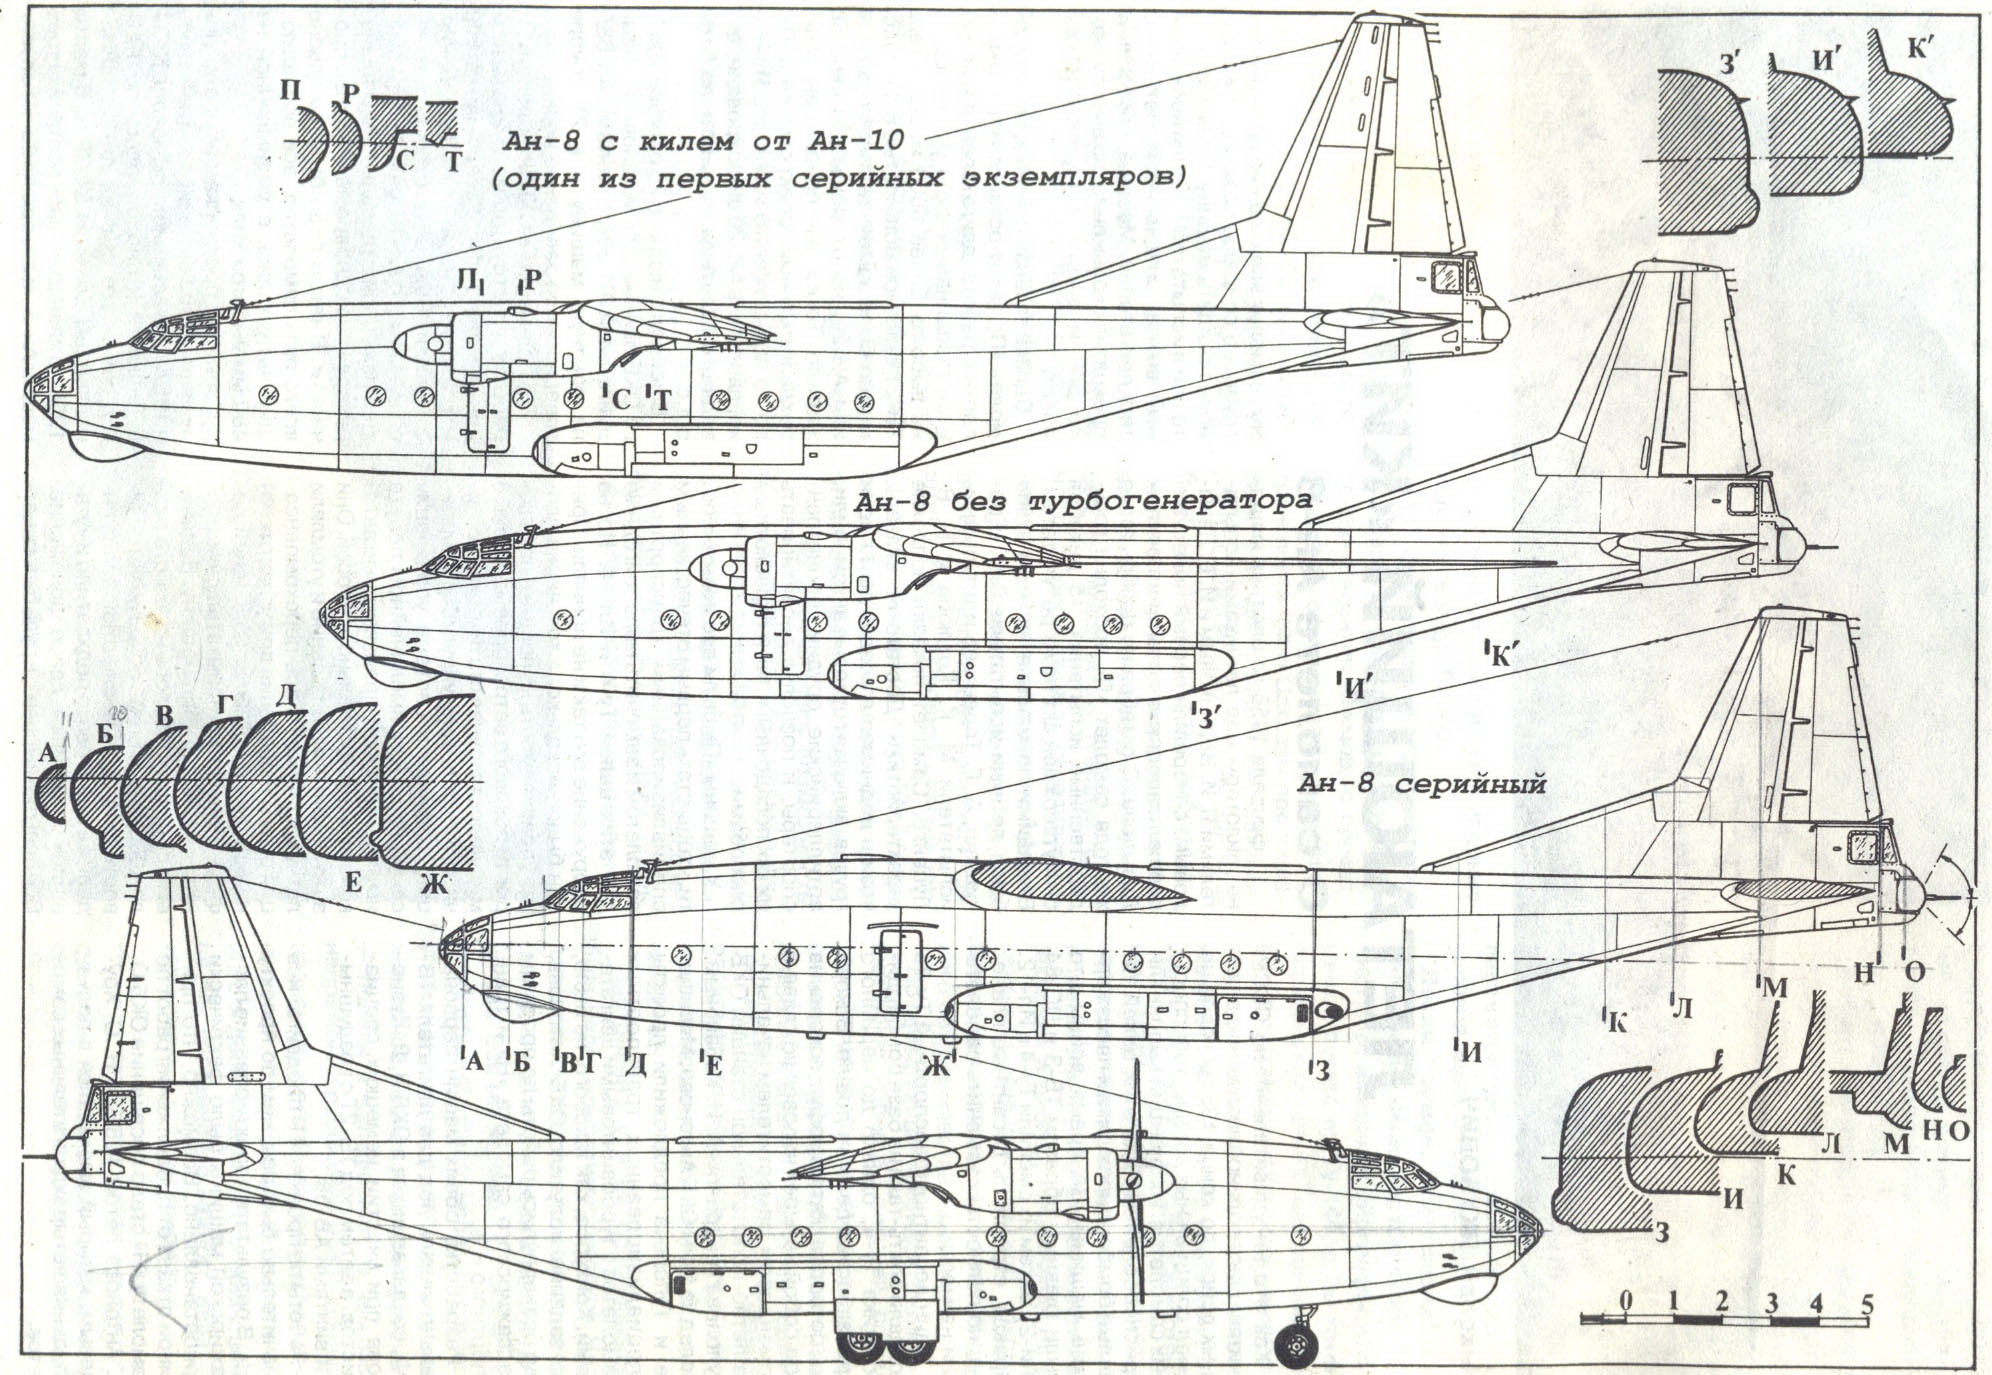 An-8 blueprint